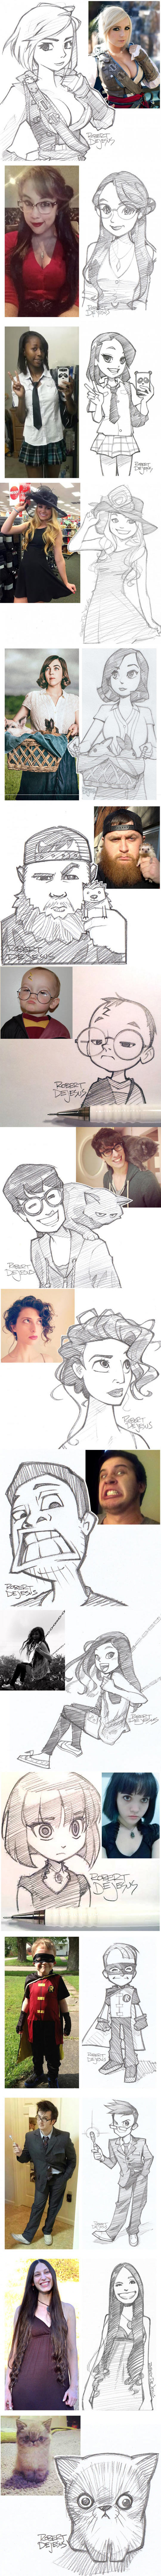 cool-cartoon-version-people-drawing